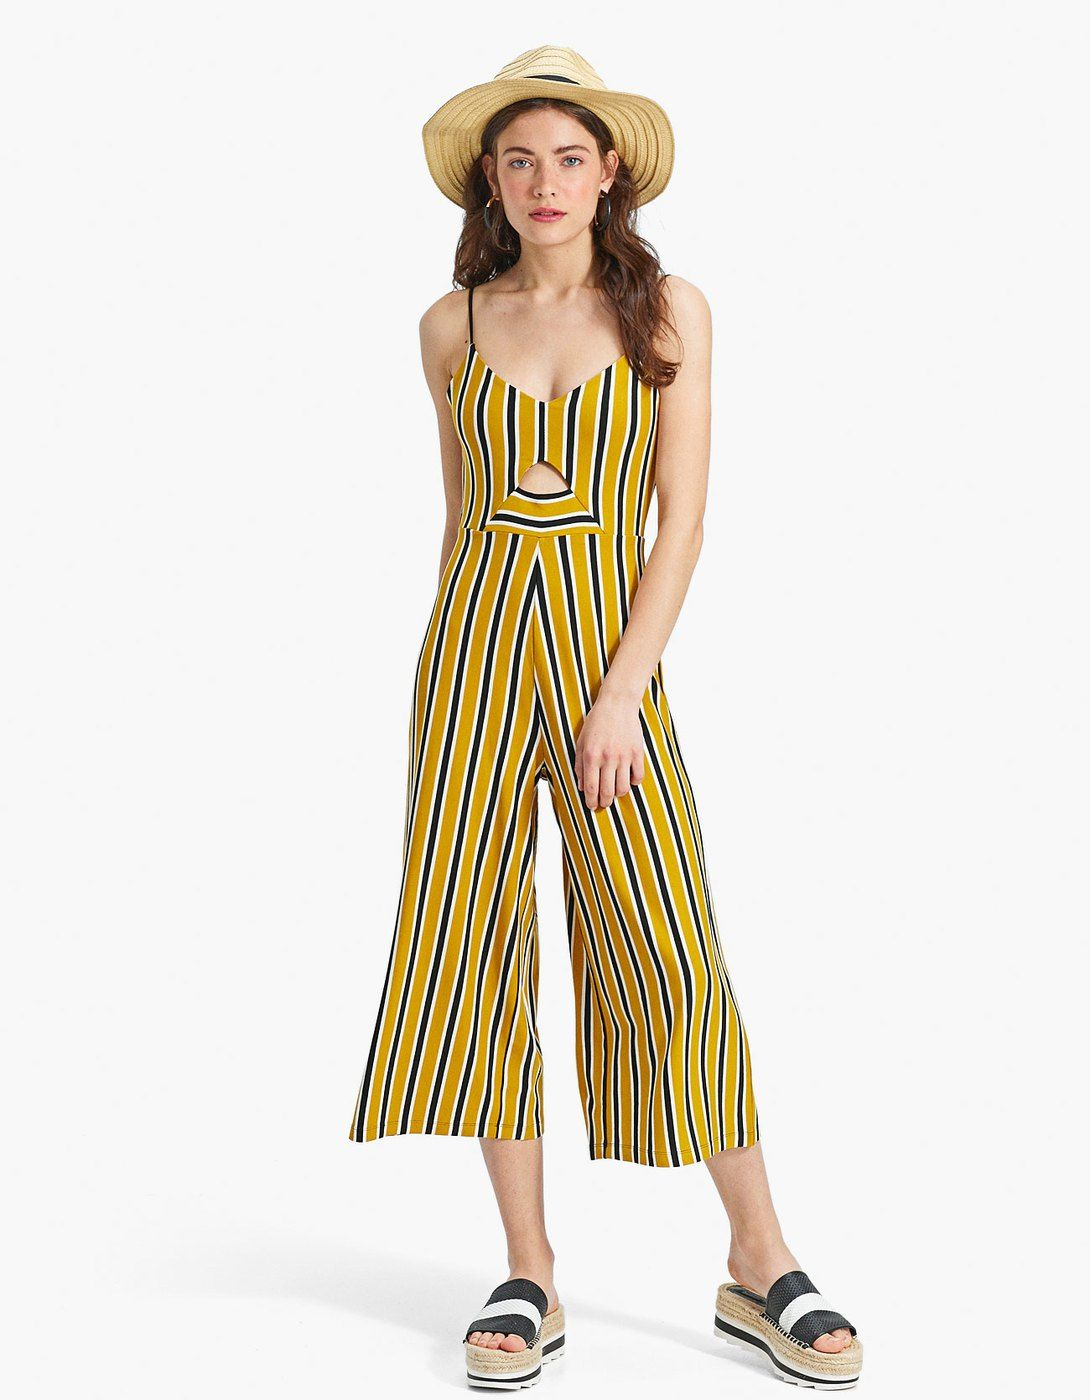 d97baddd2d5 Striped strappy culotte jumpsuit - Just In